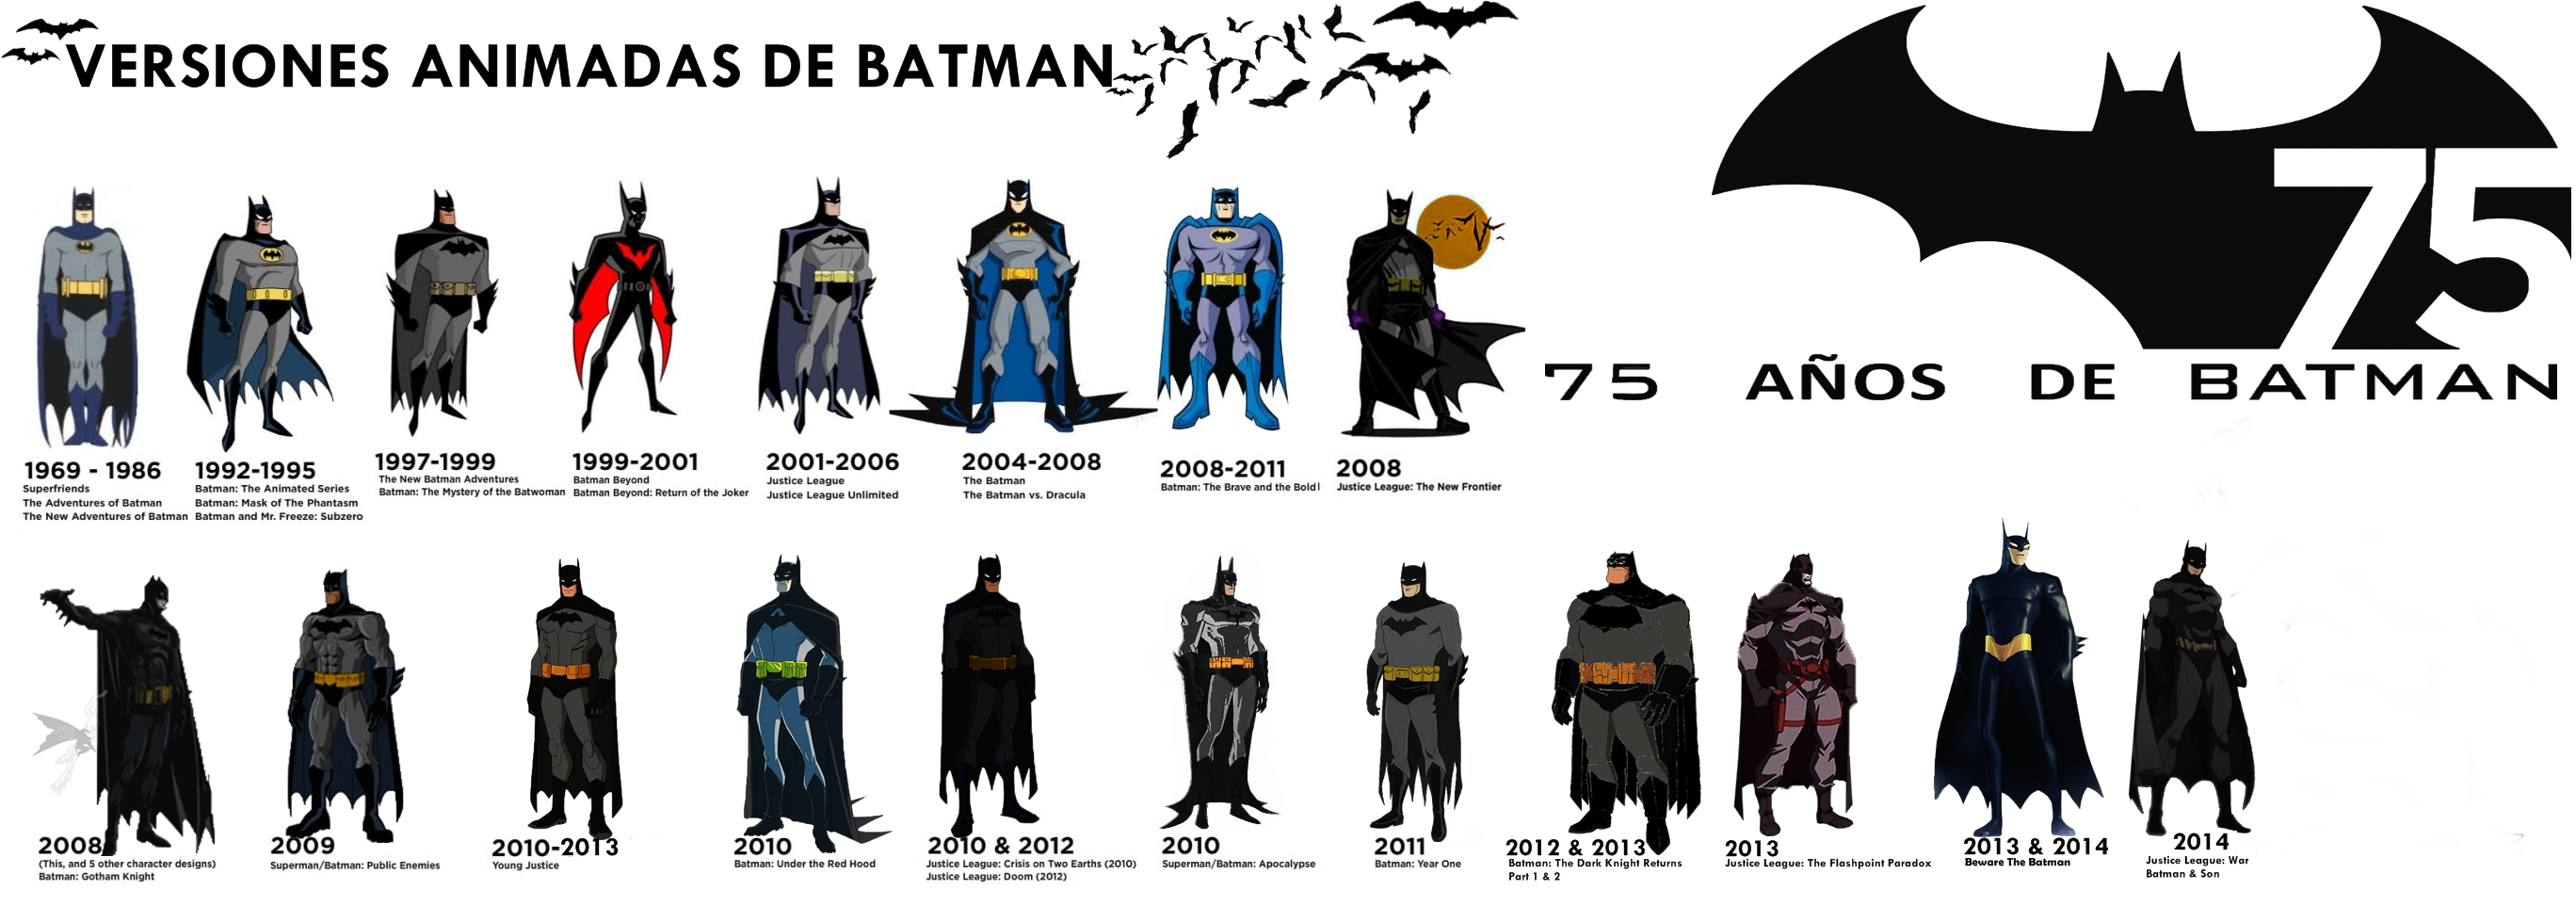 batman as the hero and villain of gotham in the scholarly essays of batman historians